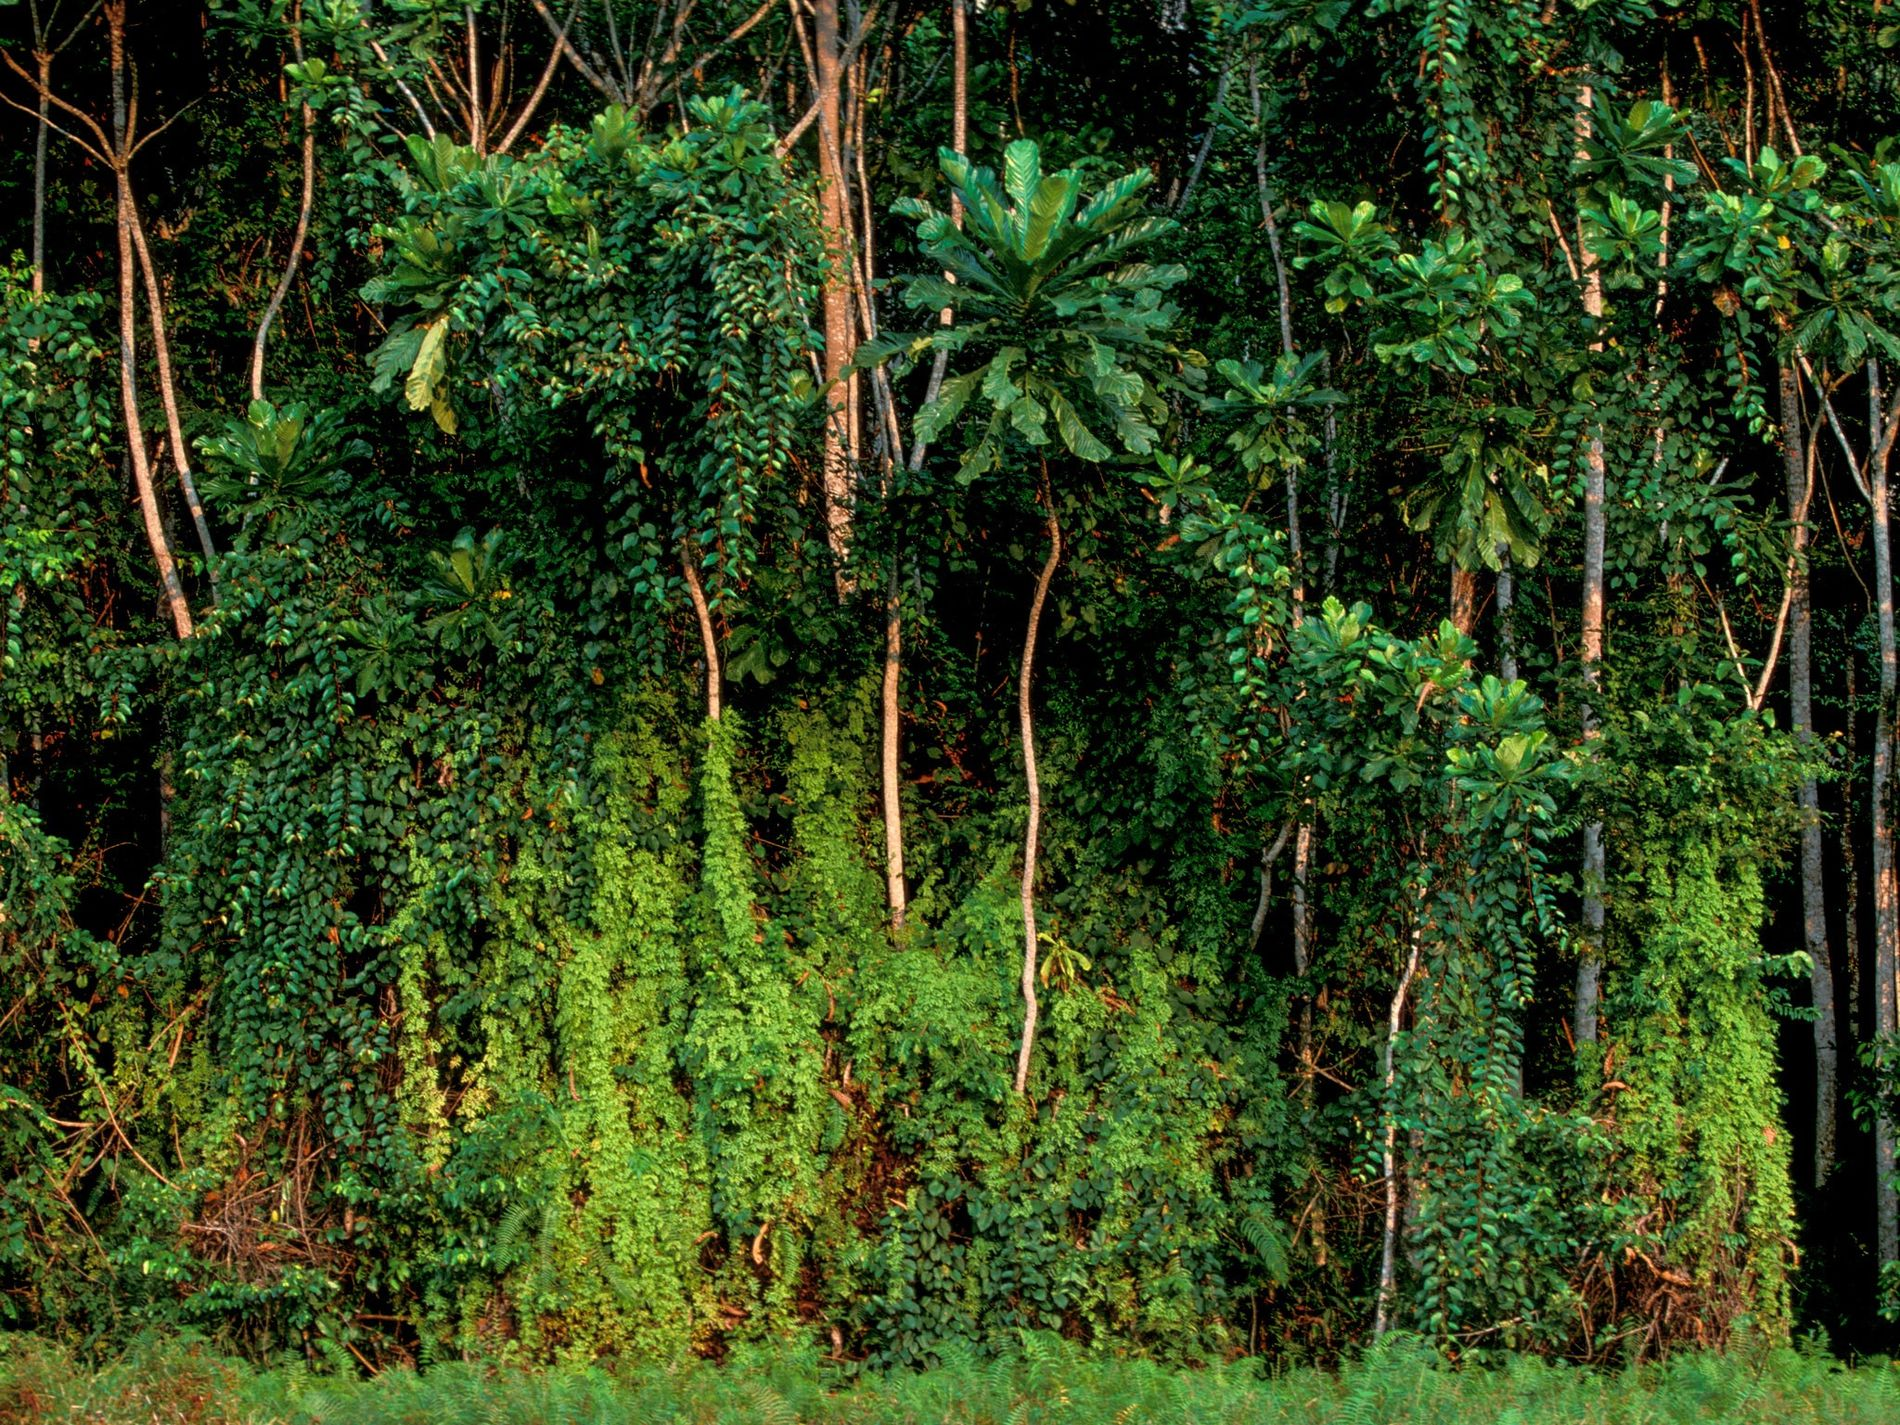 Trees in the rainforest near Rabi, Gabon. Gabon retains much of its original rainforest and has ...